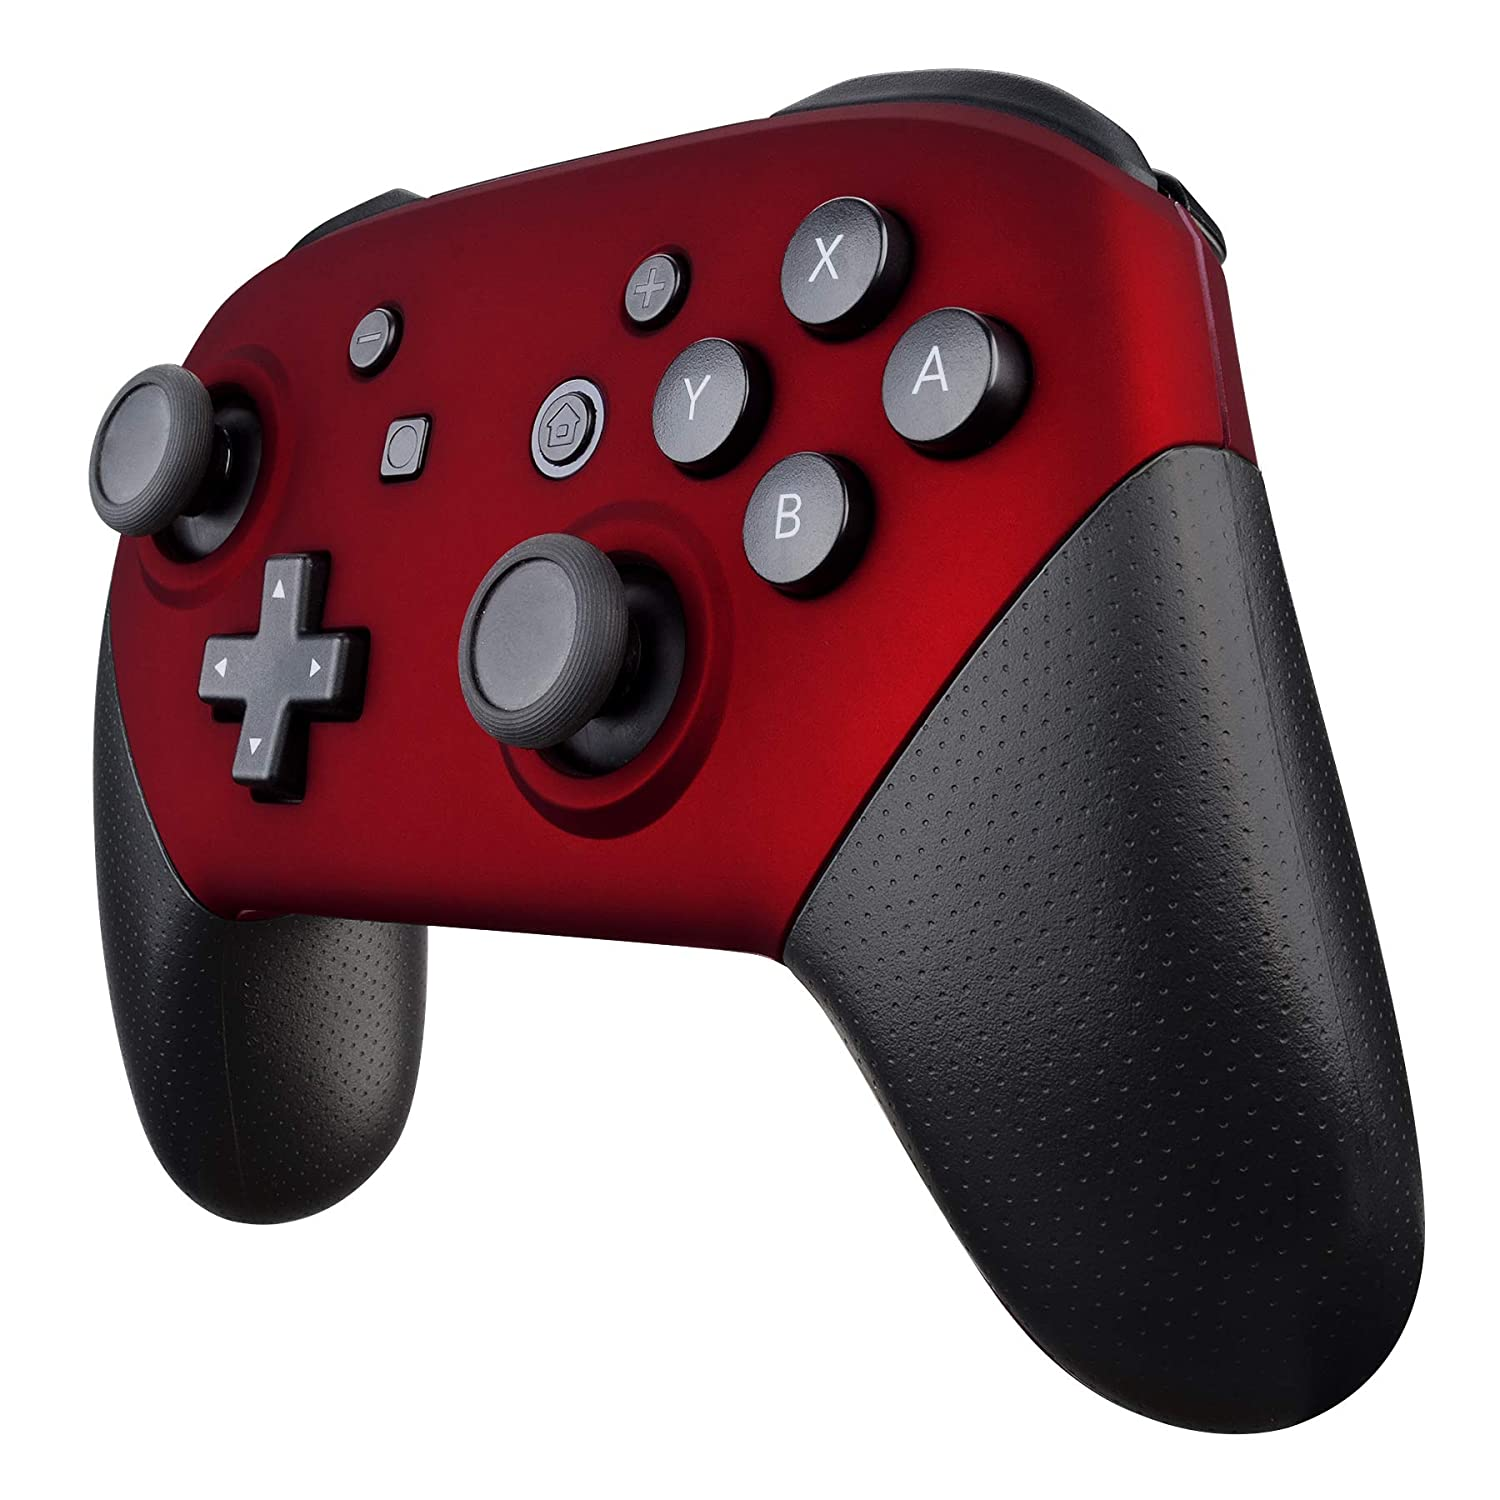 eXtremeRate Red Faceplate and Backplate for Nintendo Switch Pro Controller, Soft Touch DIY Replacement Shell Housing Case for Nintendo Switch Pro - Controller NOT Included: Video Games